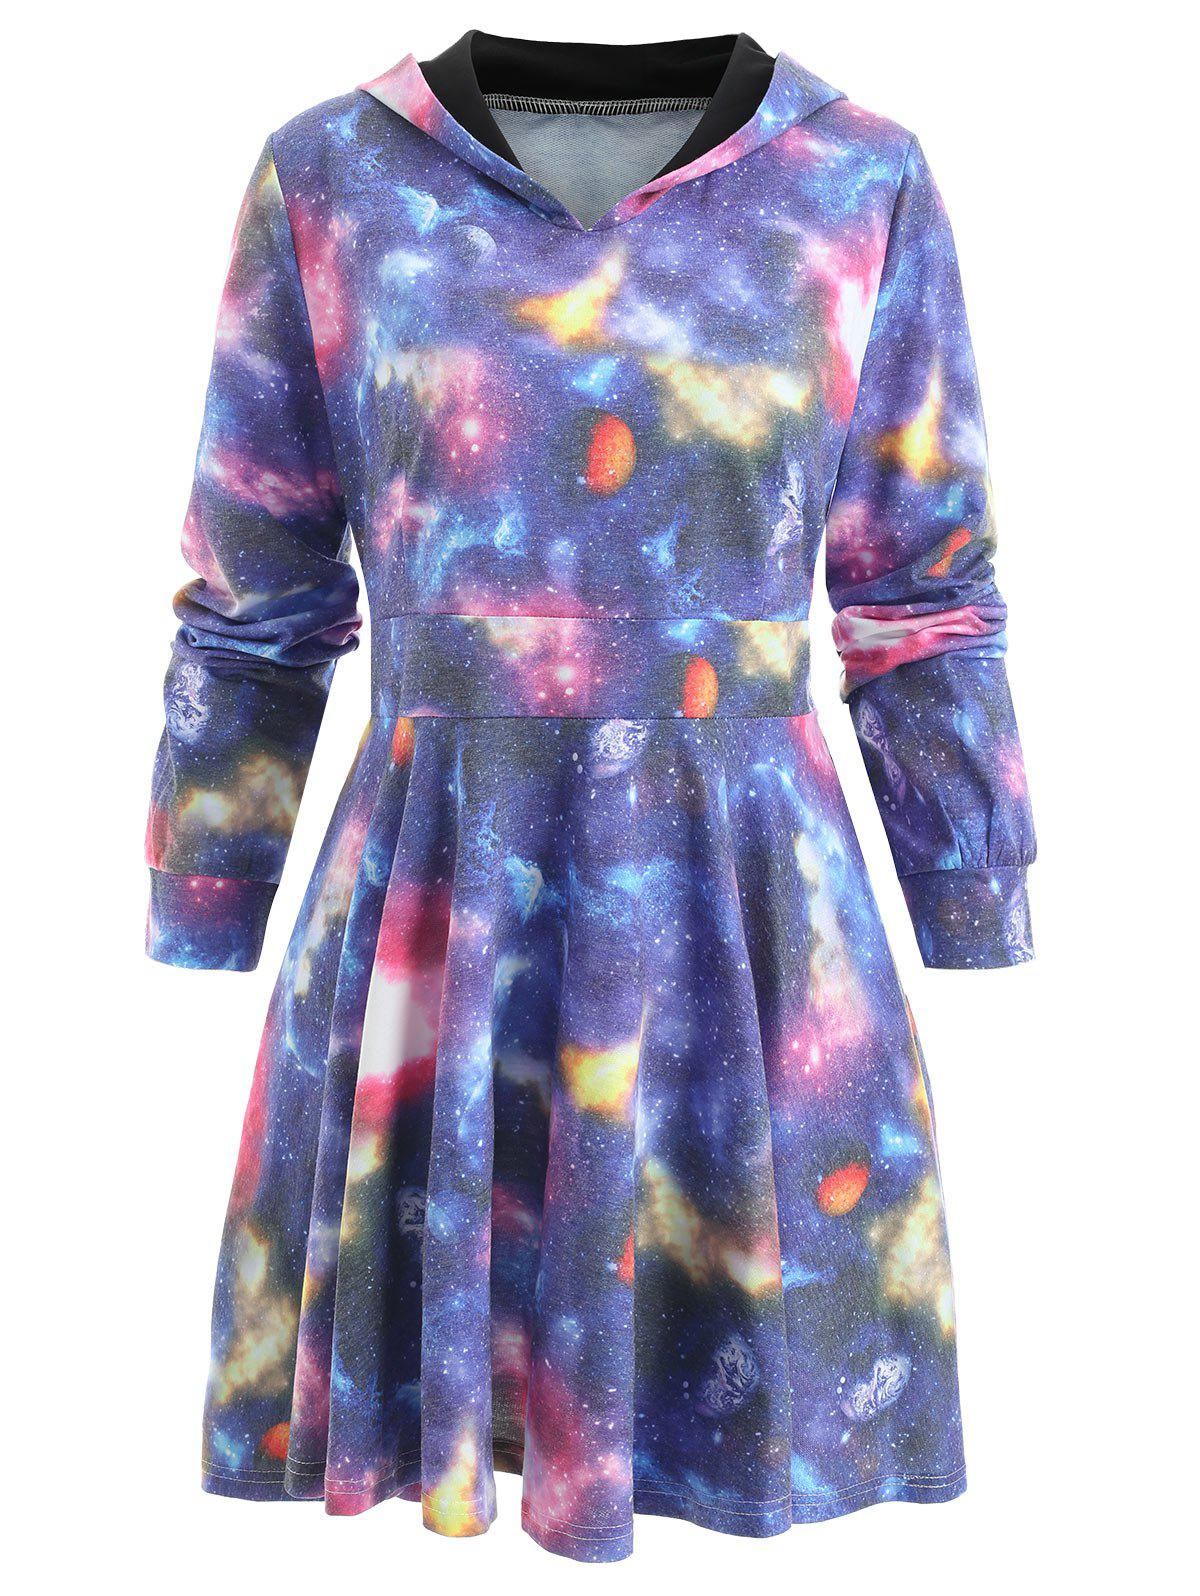 Hot Starry Sky Hooded Skater Dress